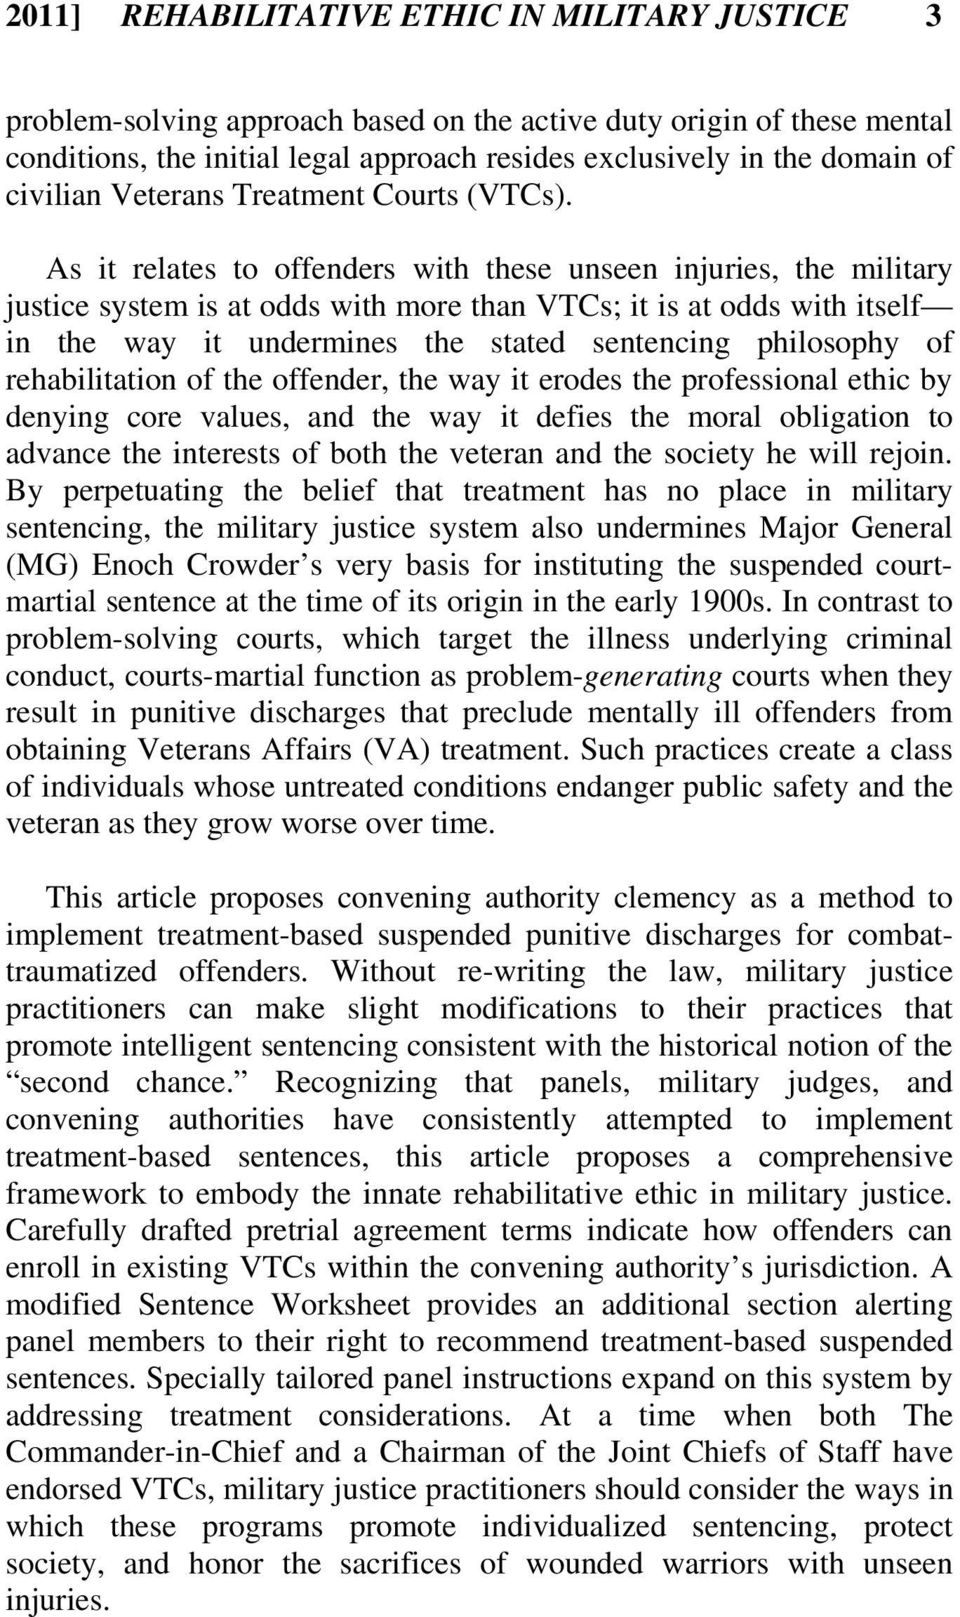 As it relates to offenders with these unseen injuries, the military justice system is at odds with more than VTCs; it is at odds with itself in the way it undermines the stated sentencing philosophy